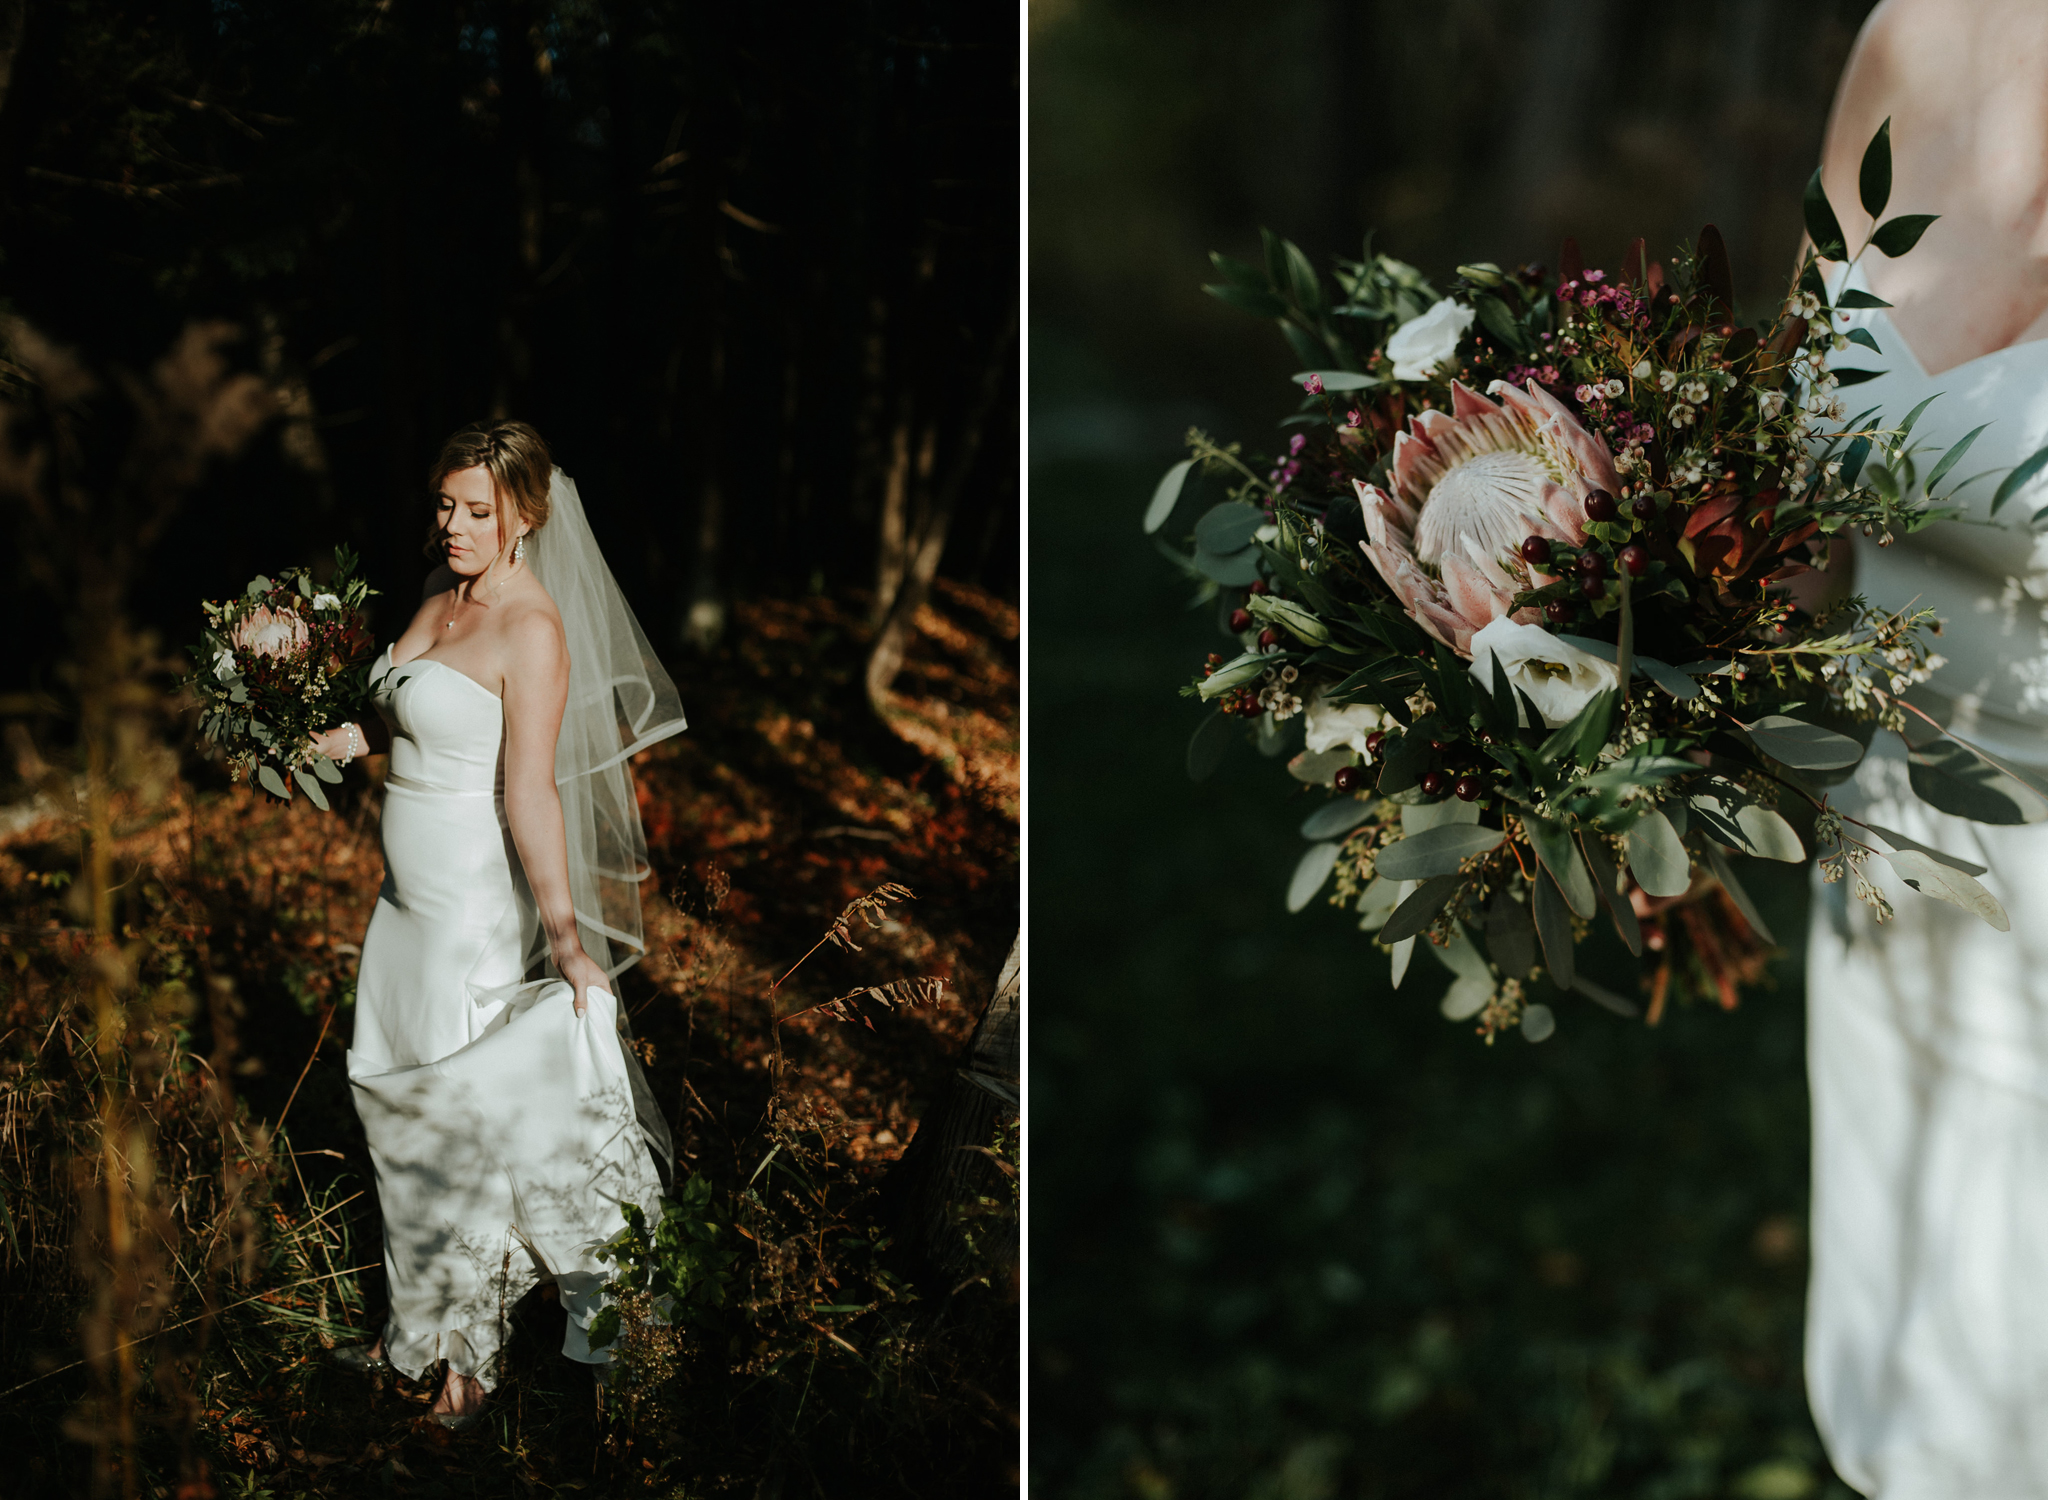 Intimate Cottage Wedding at Serenity Cottage in Owen Sound // Toronto wedding photographer Daring Wanderer